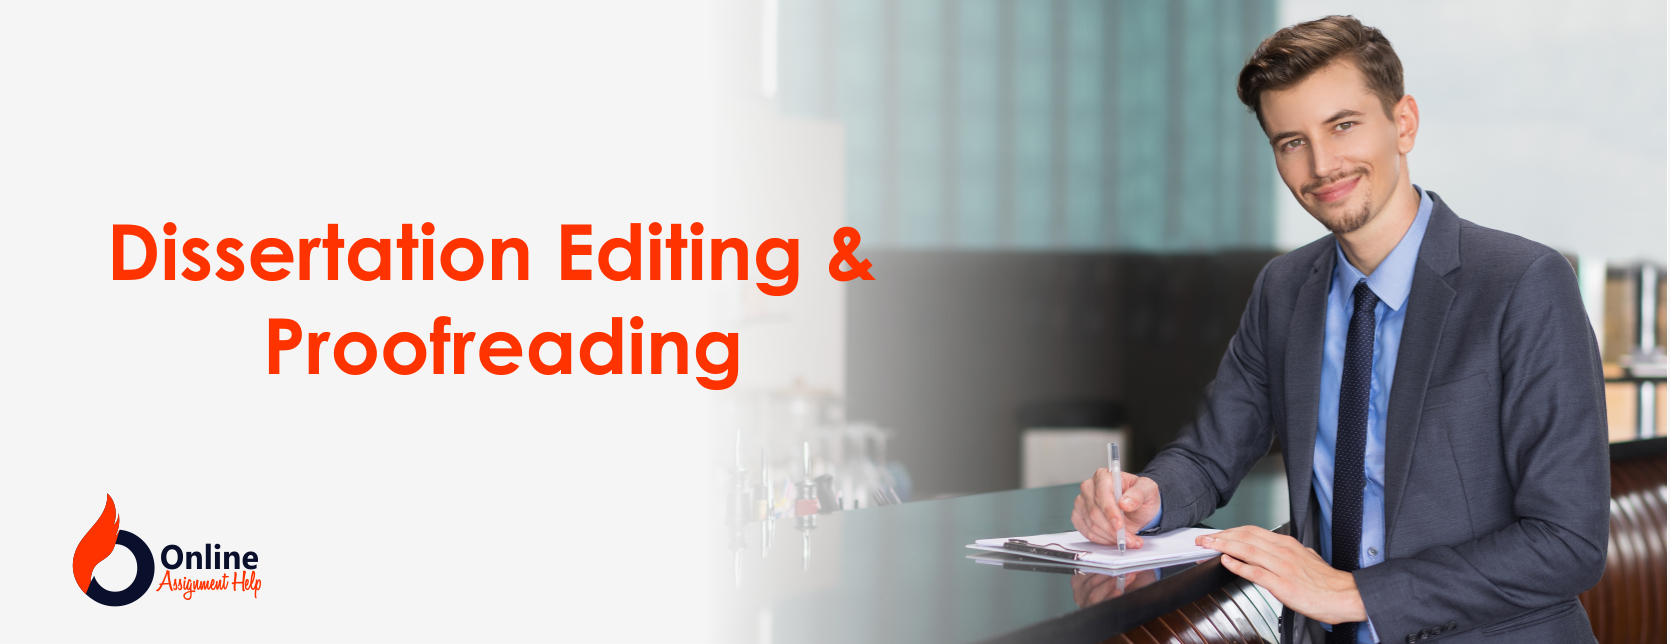 Dissertation Editing & Proofreading